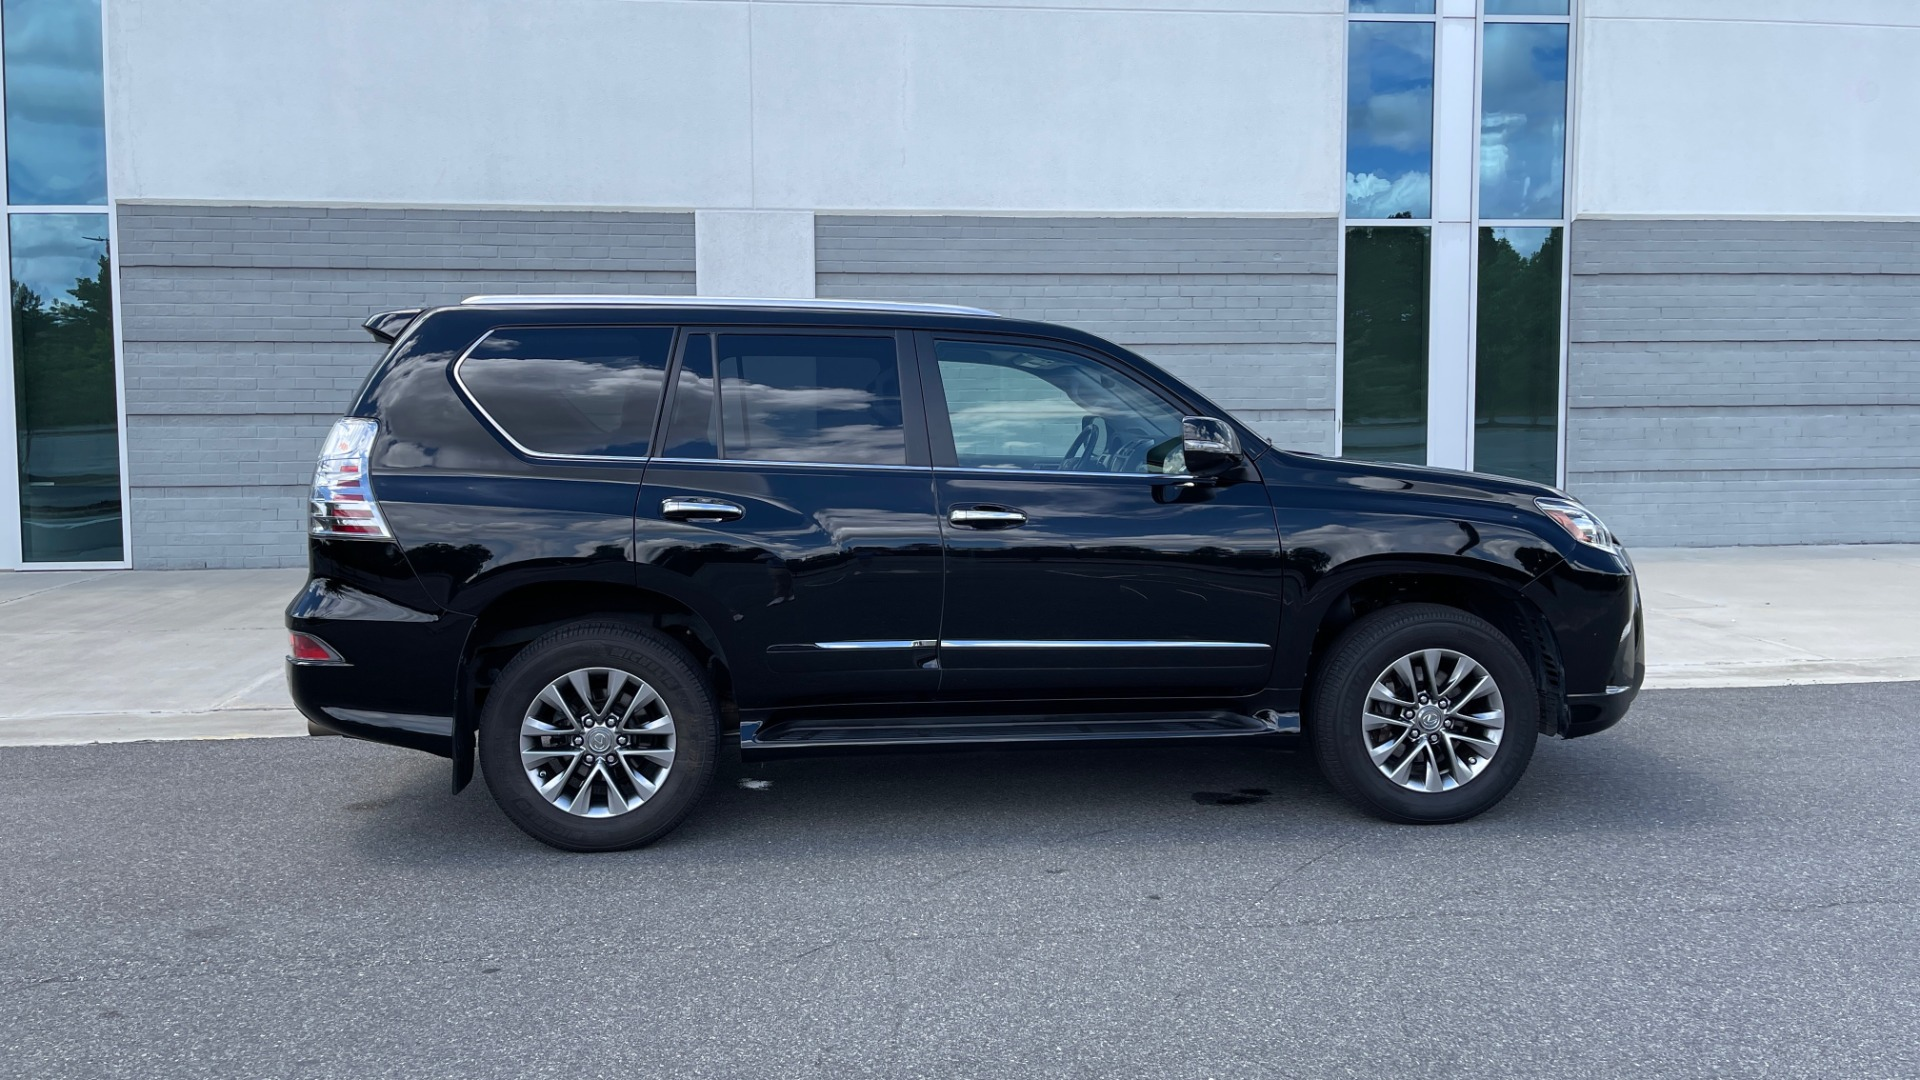 Used 2017 Lexus GX GX 460 LUXURY / AWD / NAV / SUNROOF / MARK LEV SND / REARVIEW for sale $37,995 at Formula Imports in Charlotte NC 28227 6